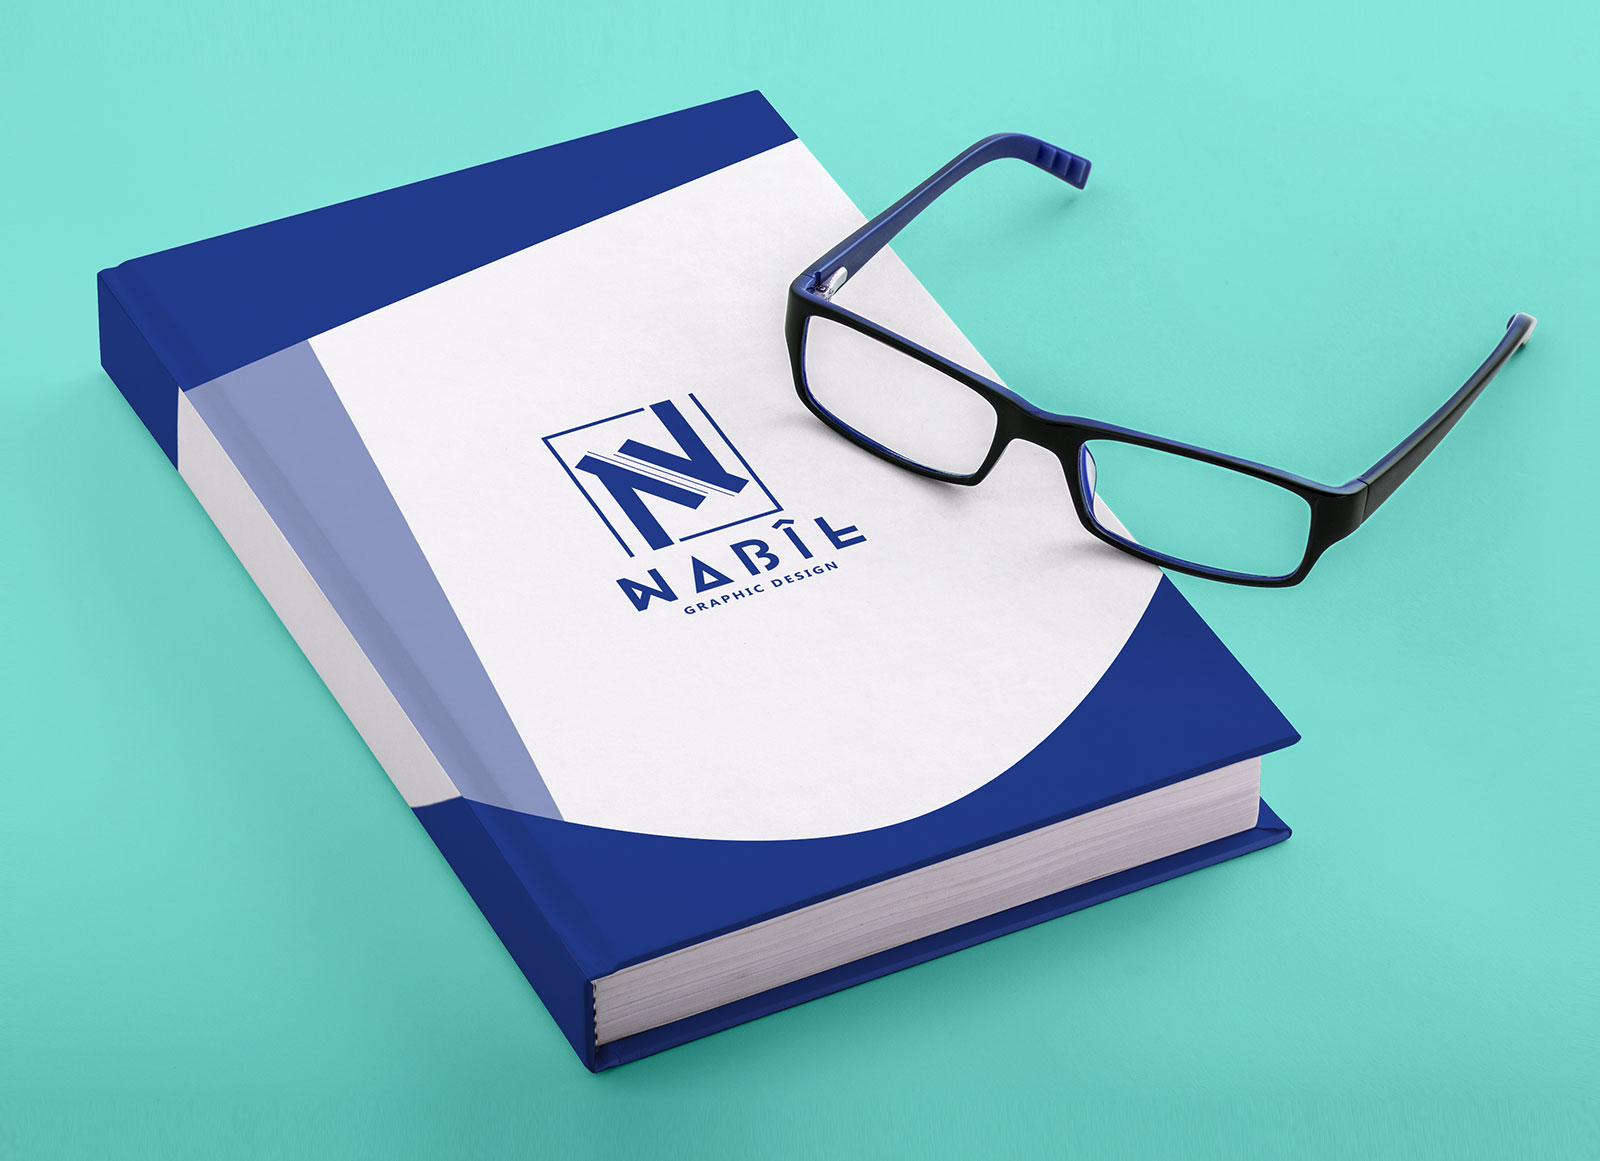 Free-Hardcover-Title-&-Spine-Book-Mockup-PSD